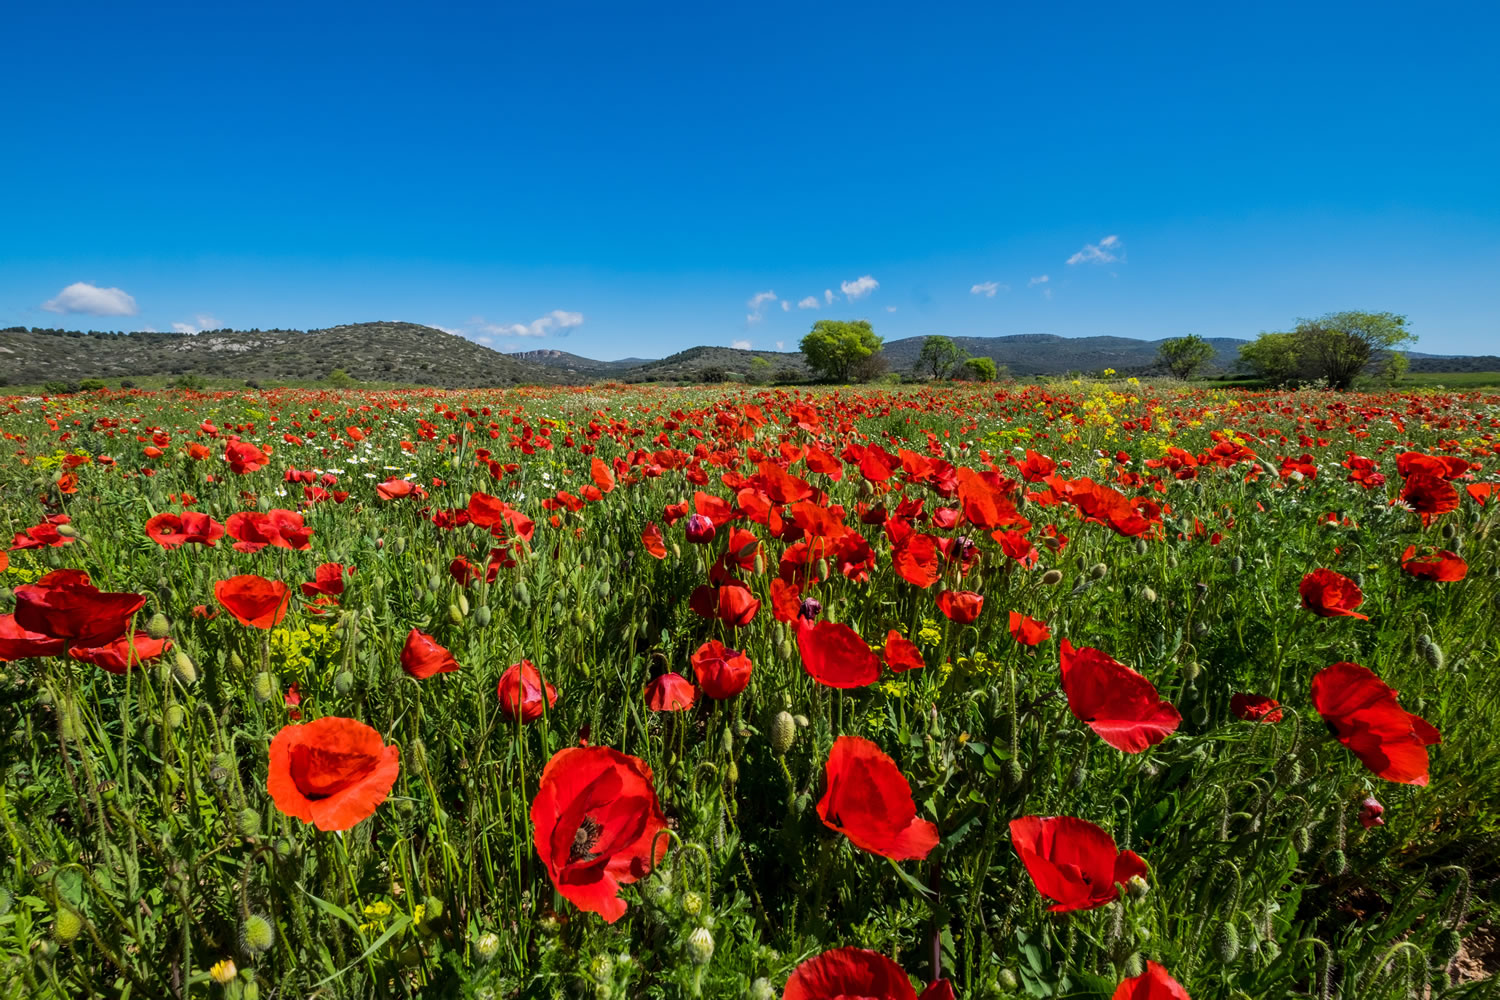 Red Poppy Field Wallpaper Mural